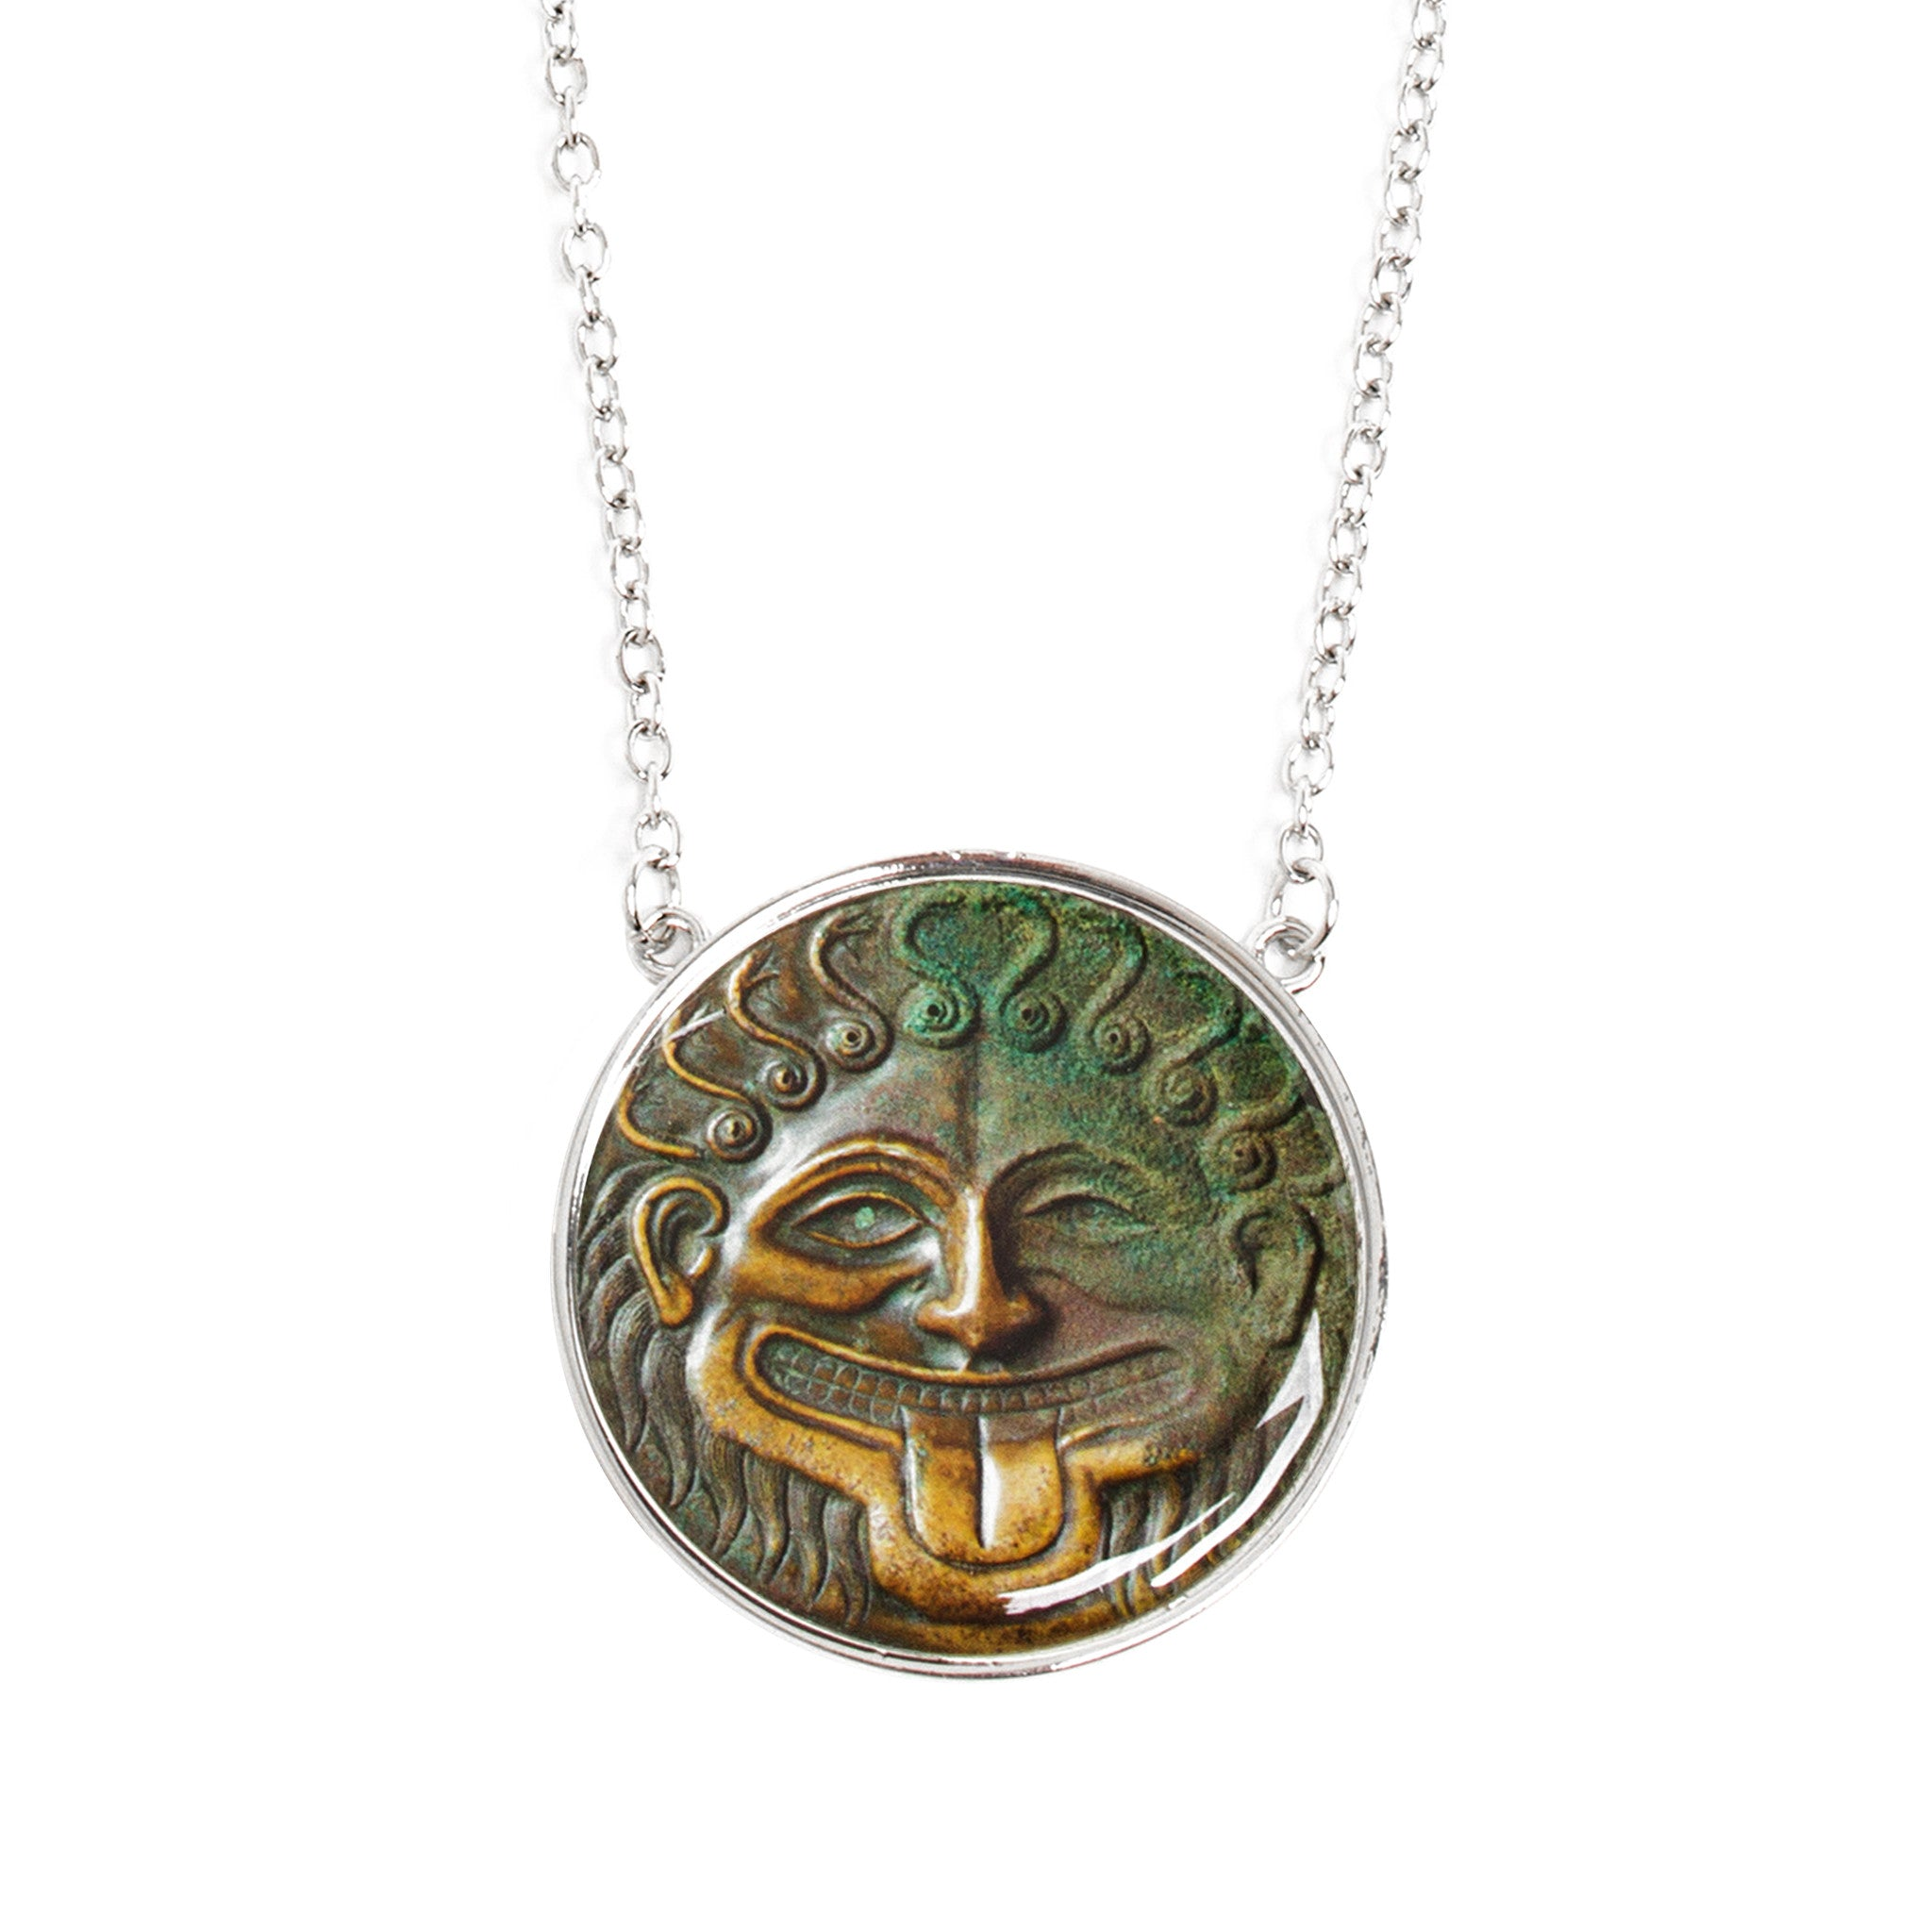 coin collections cleopatra pendants bling moon pendant face greek s